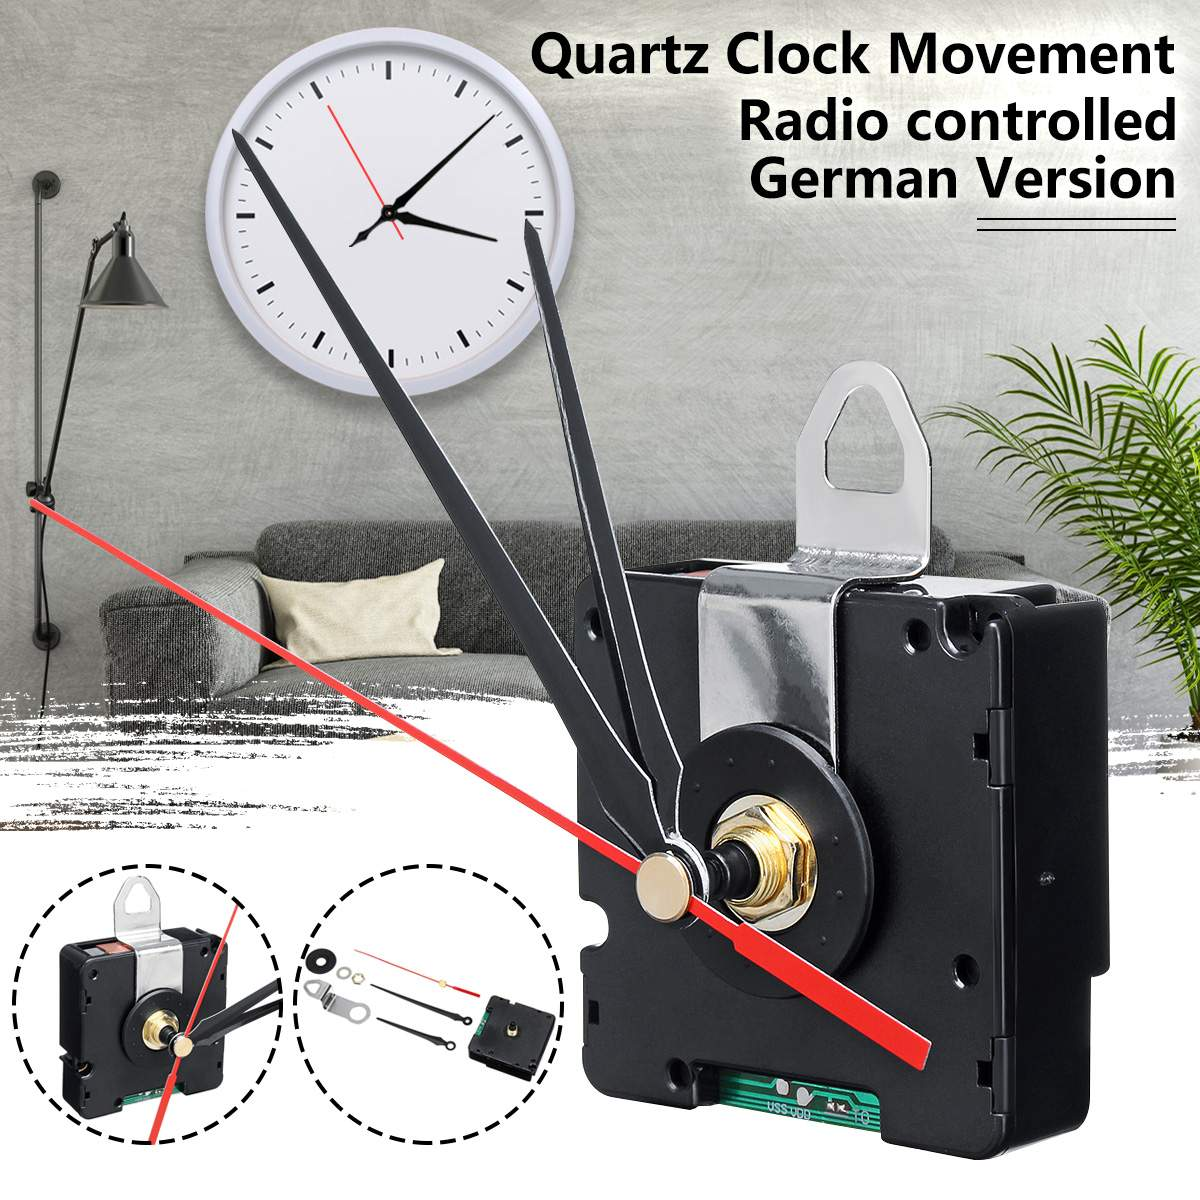 Quartz Clock German Version DCF Just for European Region Quartz Clock Movement Radio Controlled For Europe HR9624Quartz Clock German Version DCF Just for European Region Quartz Clock Movement Radio Controlled For Europe HR9624